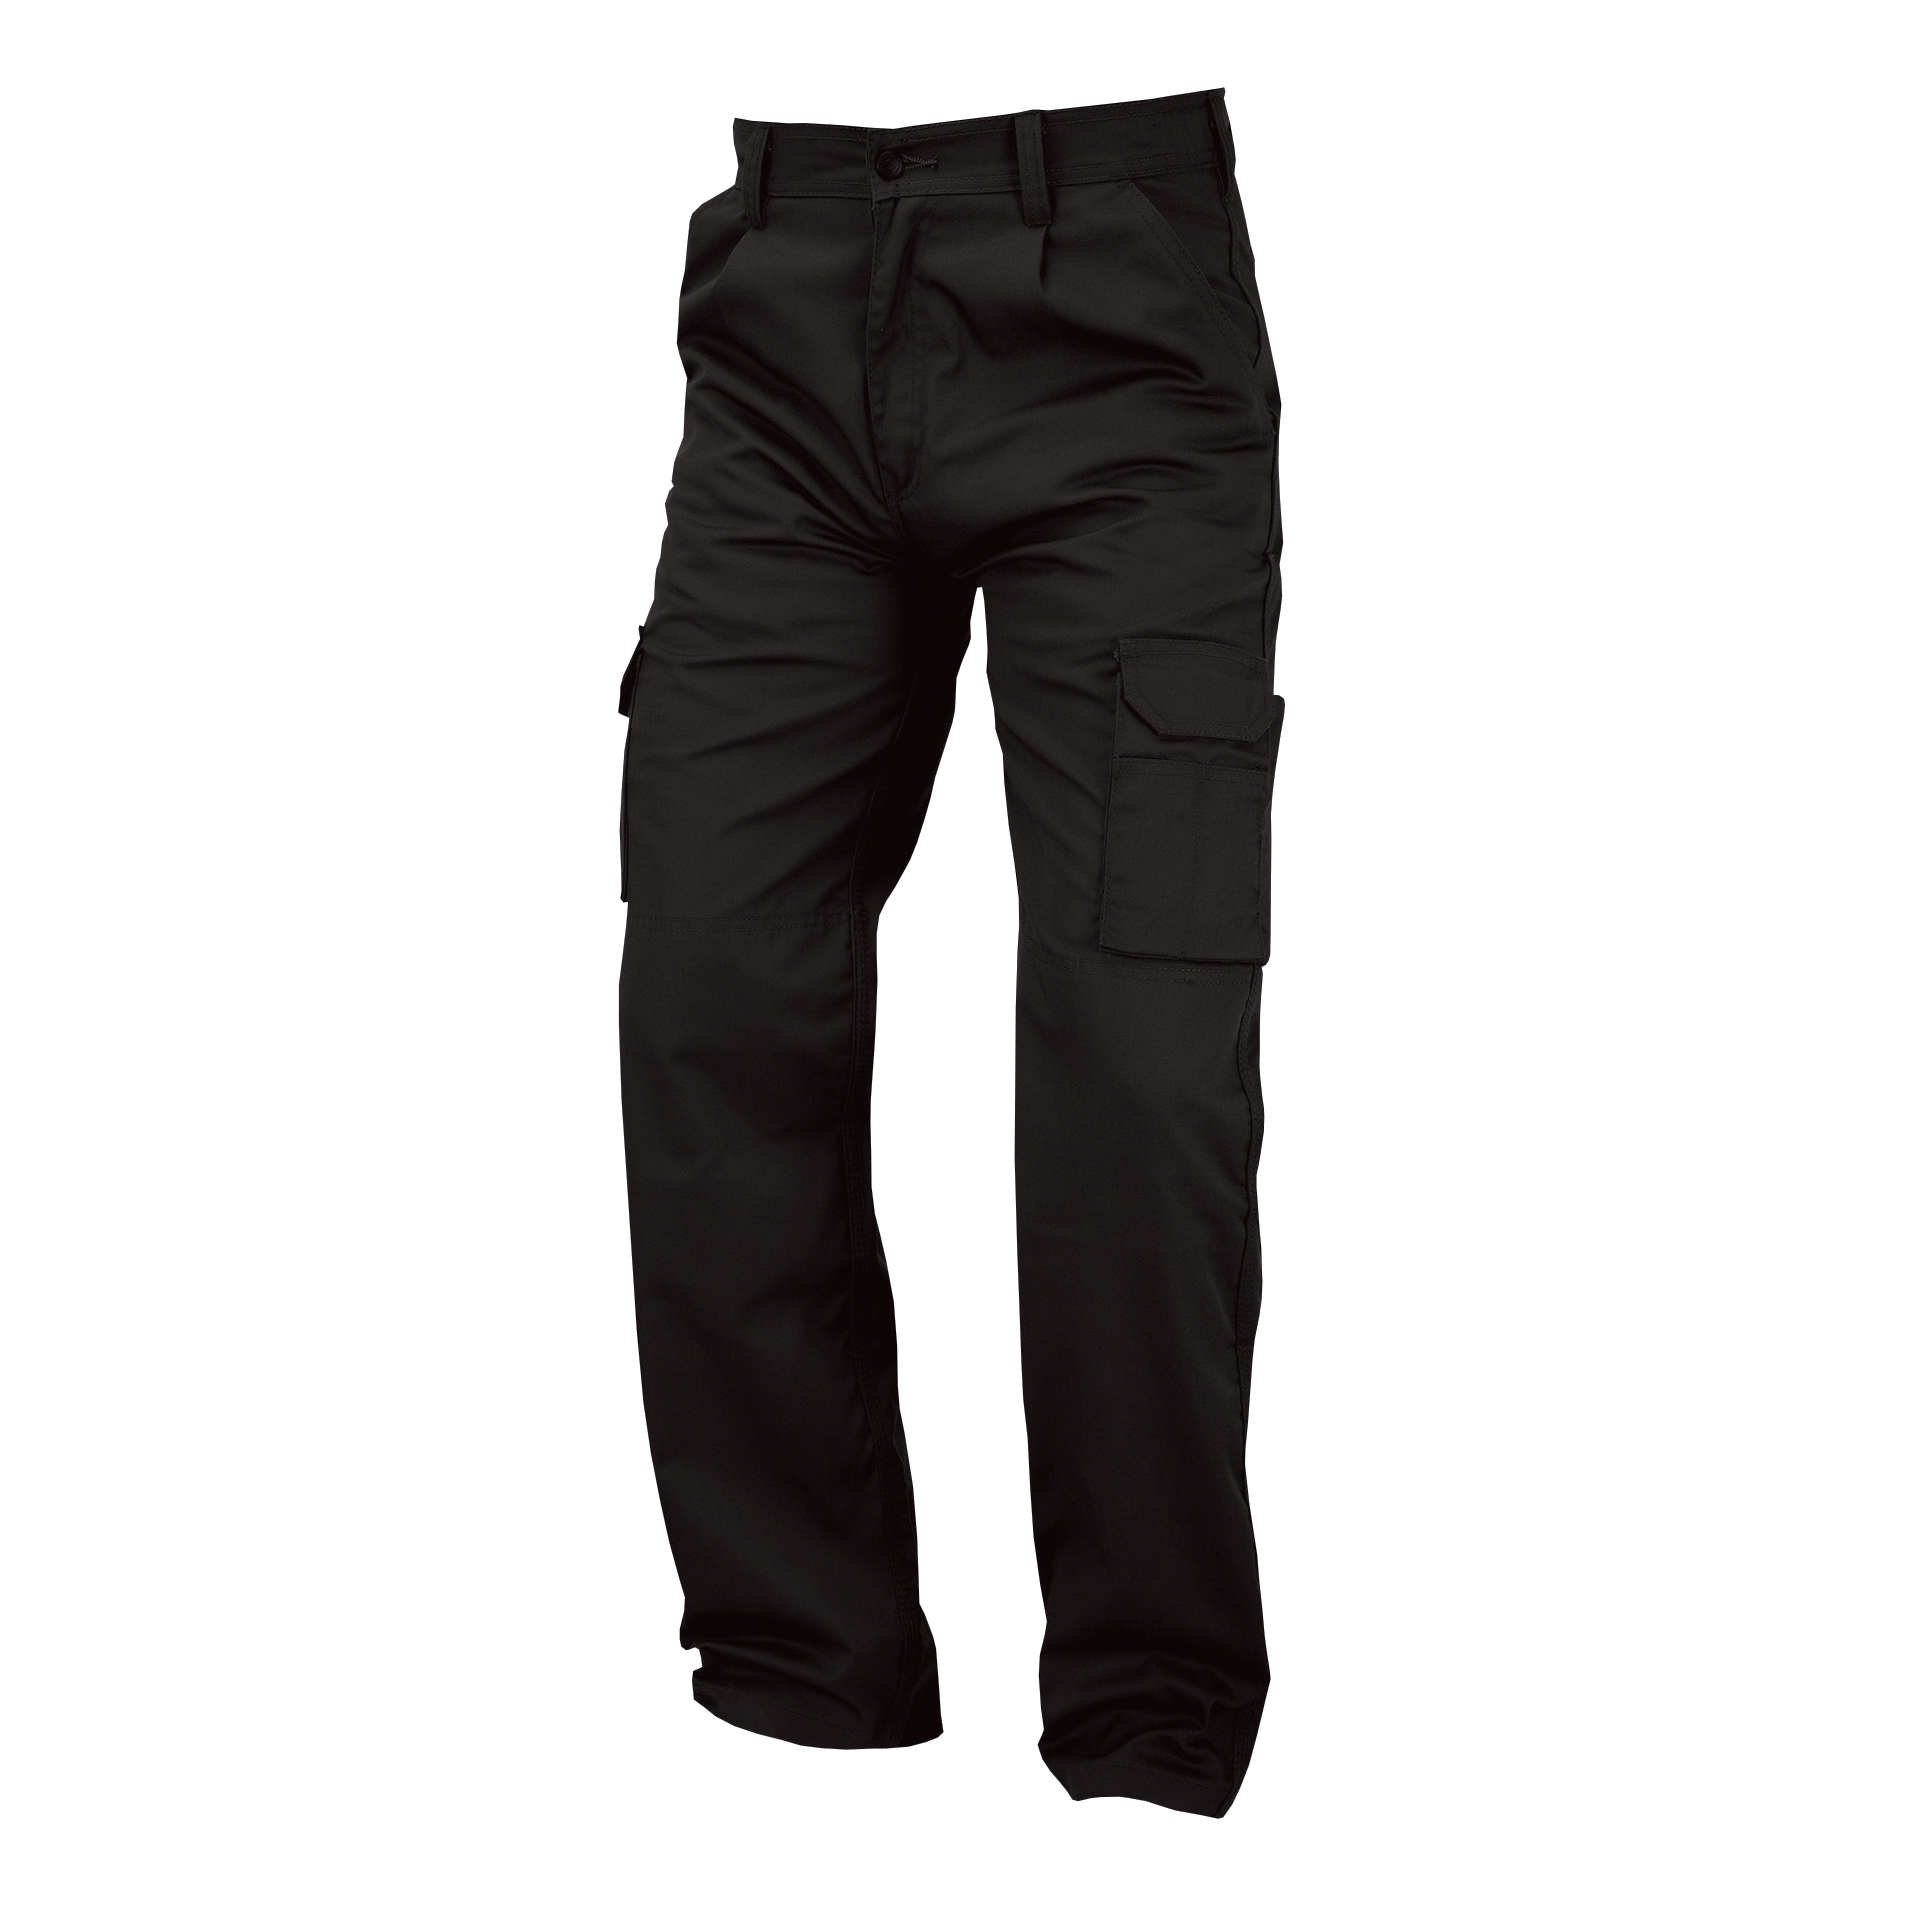 Business Kneepad Combat Trouser Multi-functional Waist 48in Leg 32in Black